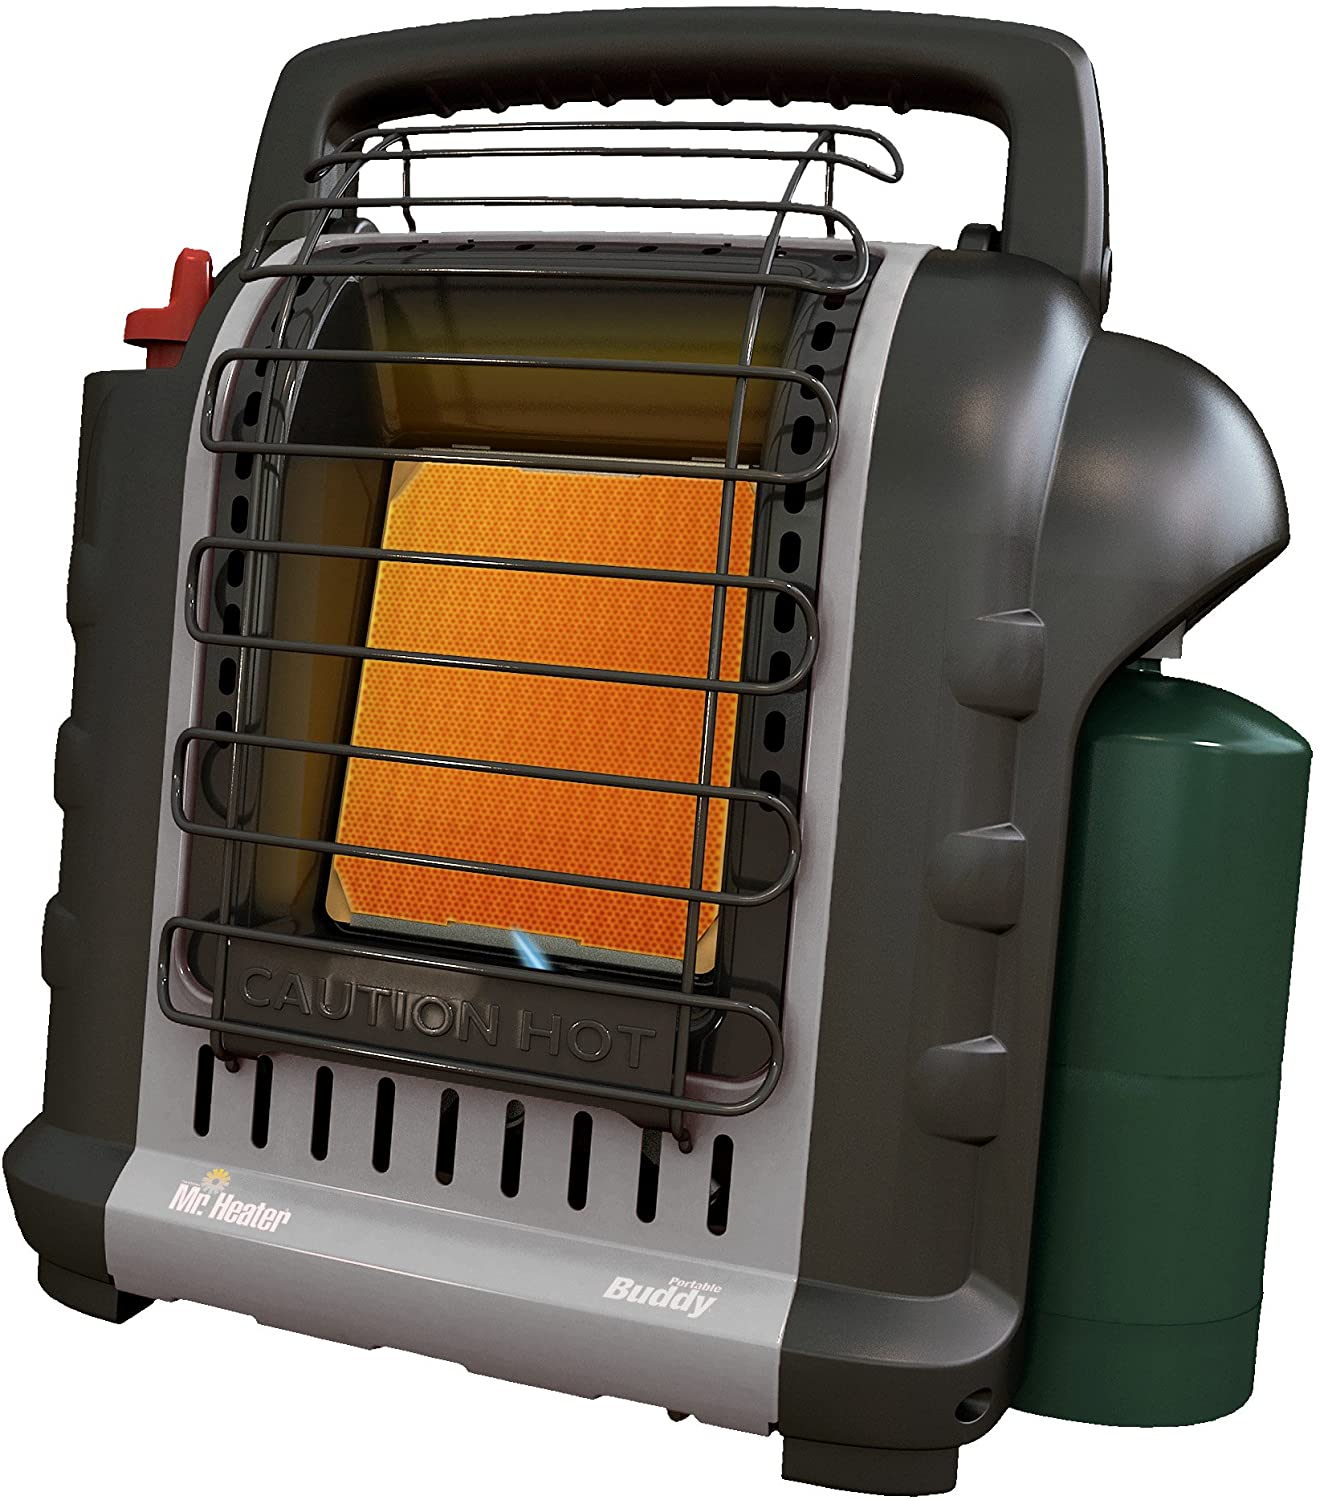 Mr Heater F232017 MH9BXRV Buddy Grey Indoor-Safe Portable RV Radiant Heater